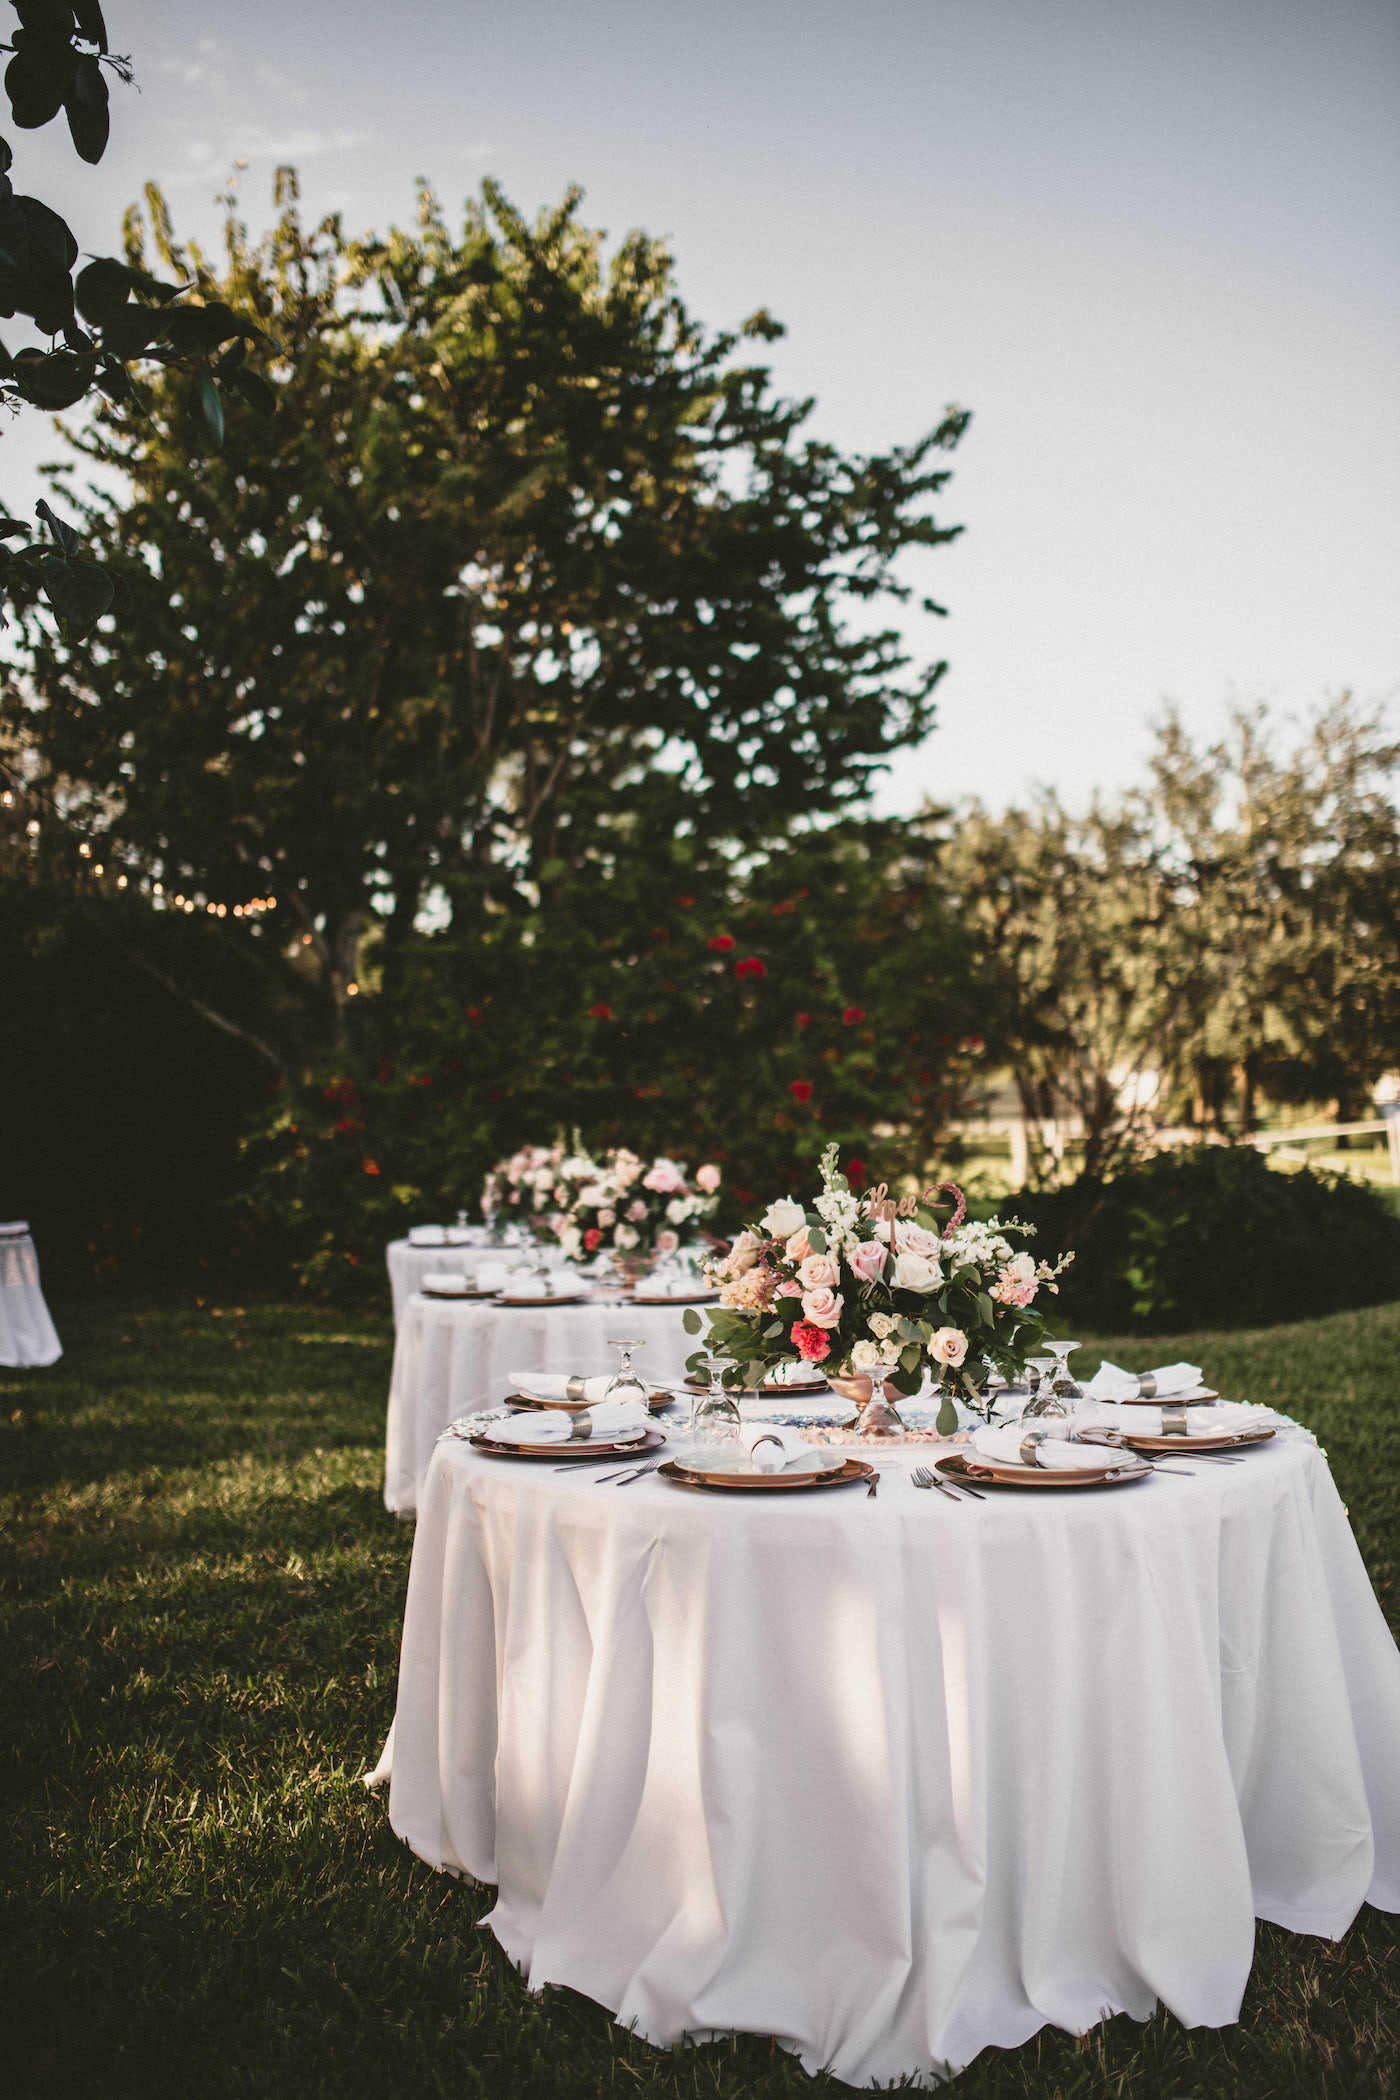 Tampa Outdoor Waterfront Garden Wedding Reception Guest Tables with Sequin Runners and Blush Pink and White Rose Centerpieces with Eucalyptus Greenery and Gold Charger Plates | Elite Events Catering